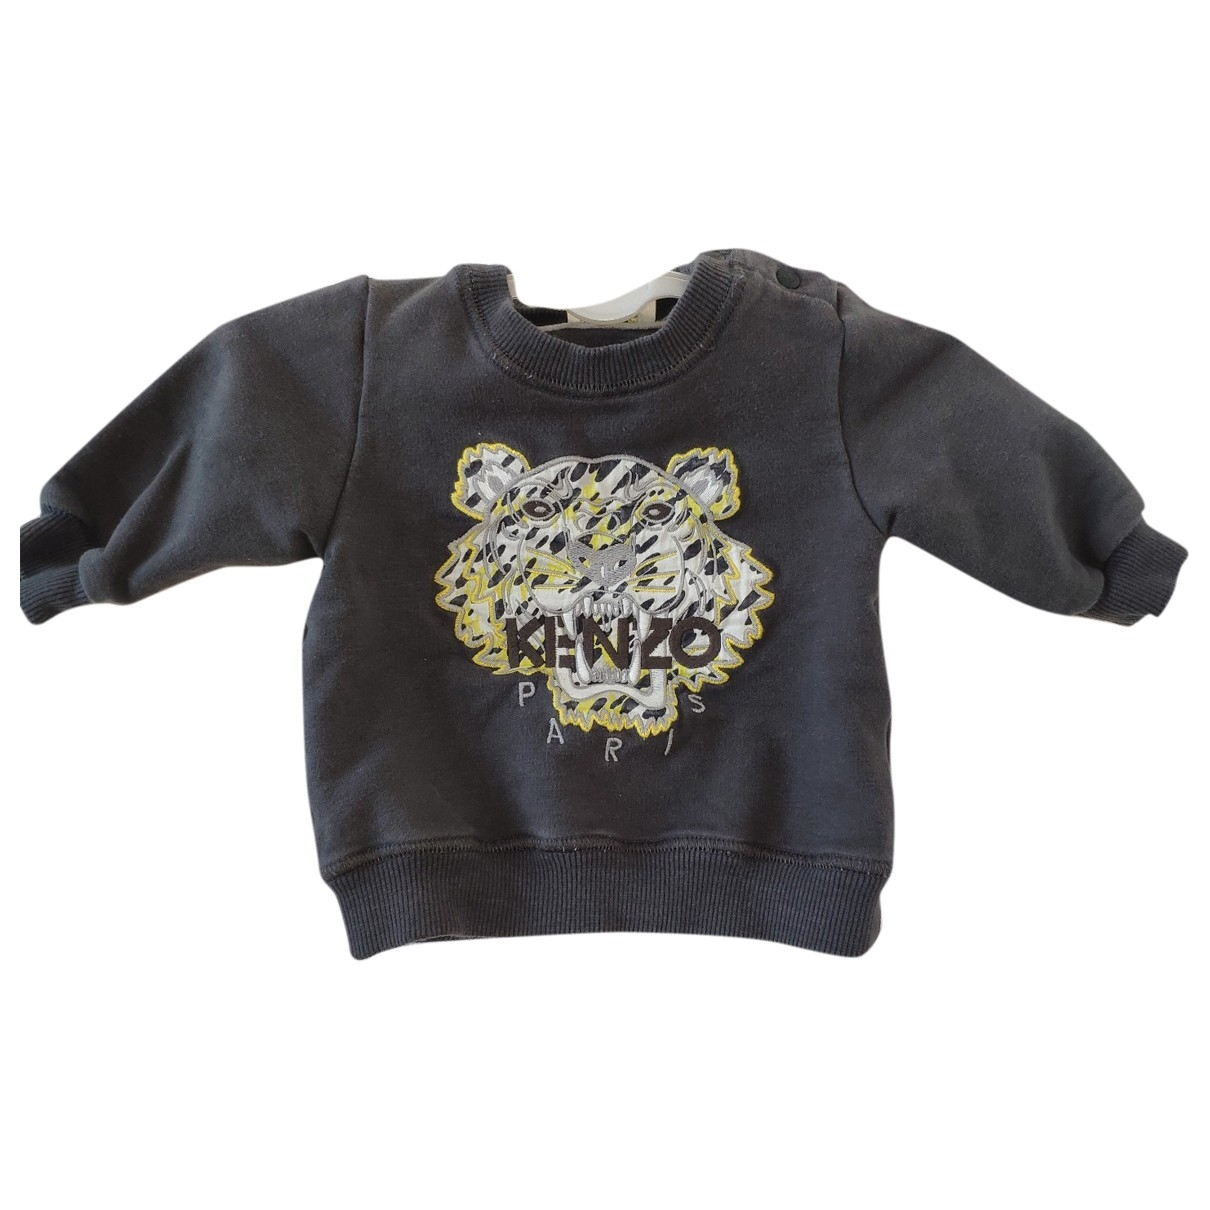 Kenzo \N Grey Cotton Knitwear for Kids 6 months - up to 67cm FR